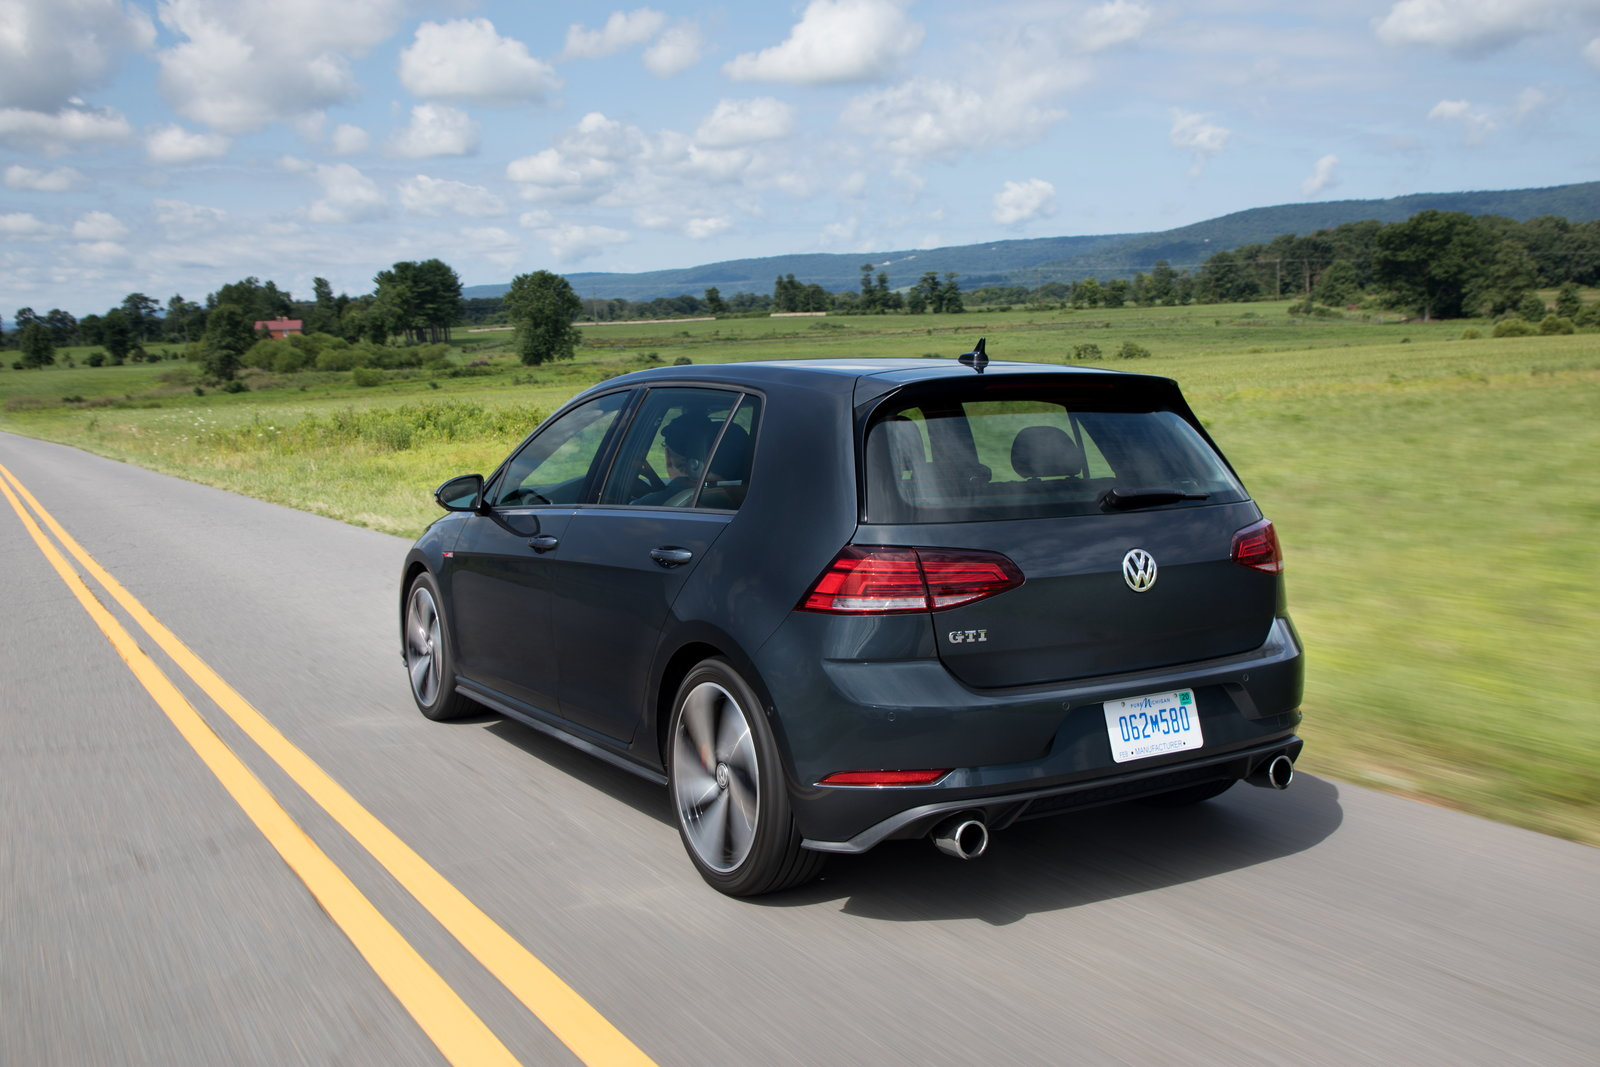 2019 Volkswagen GTI: Preview, Pricing, Release Date